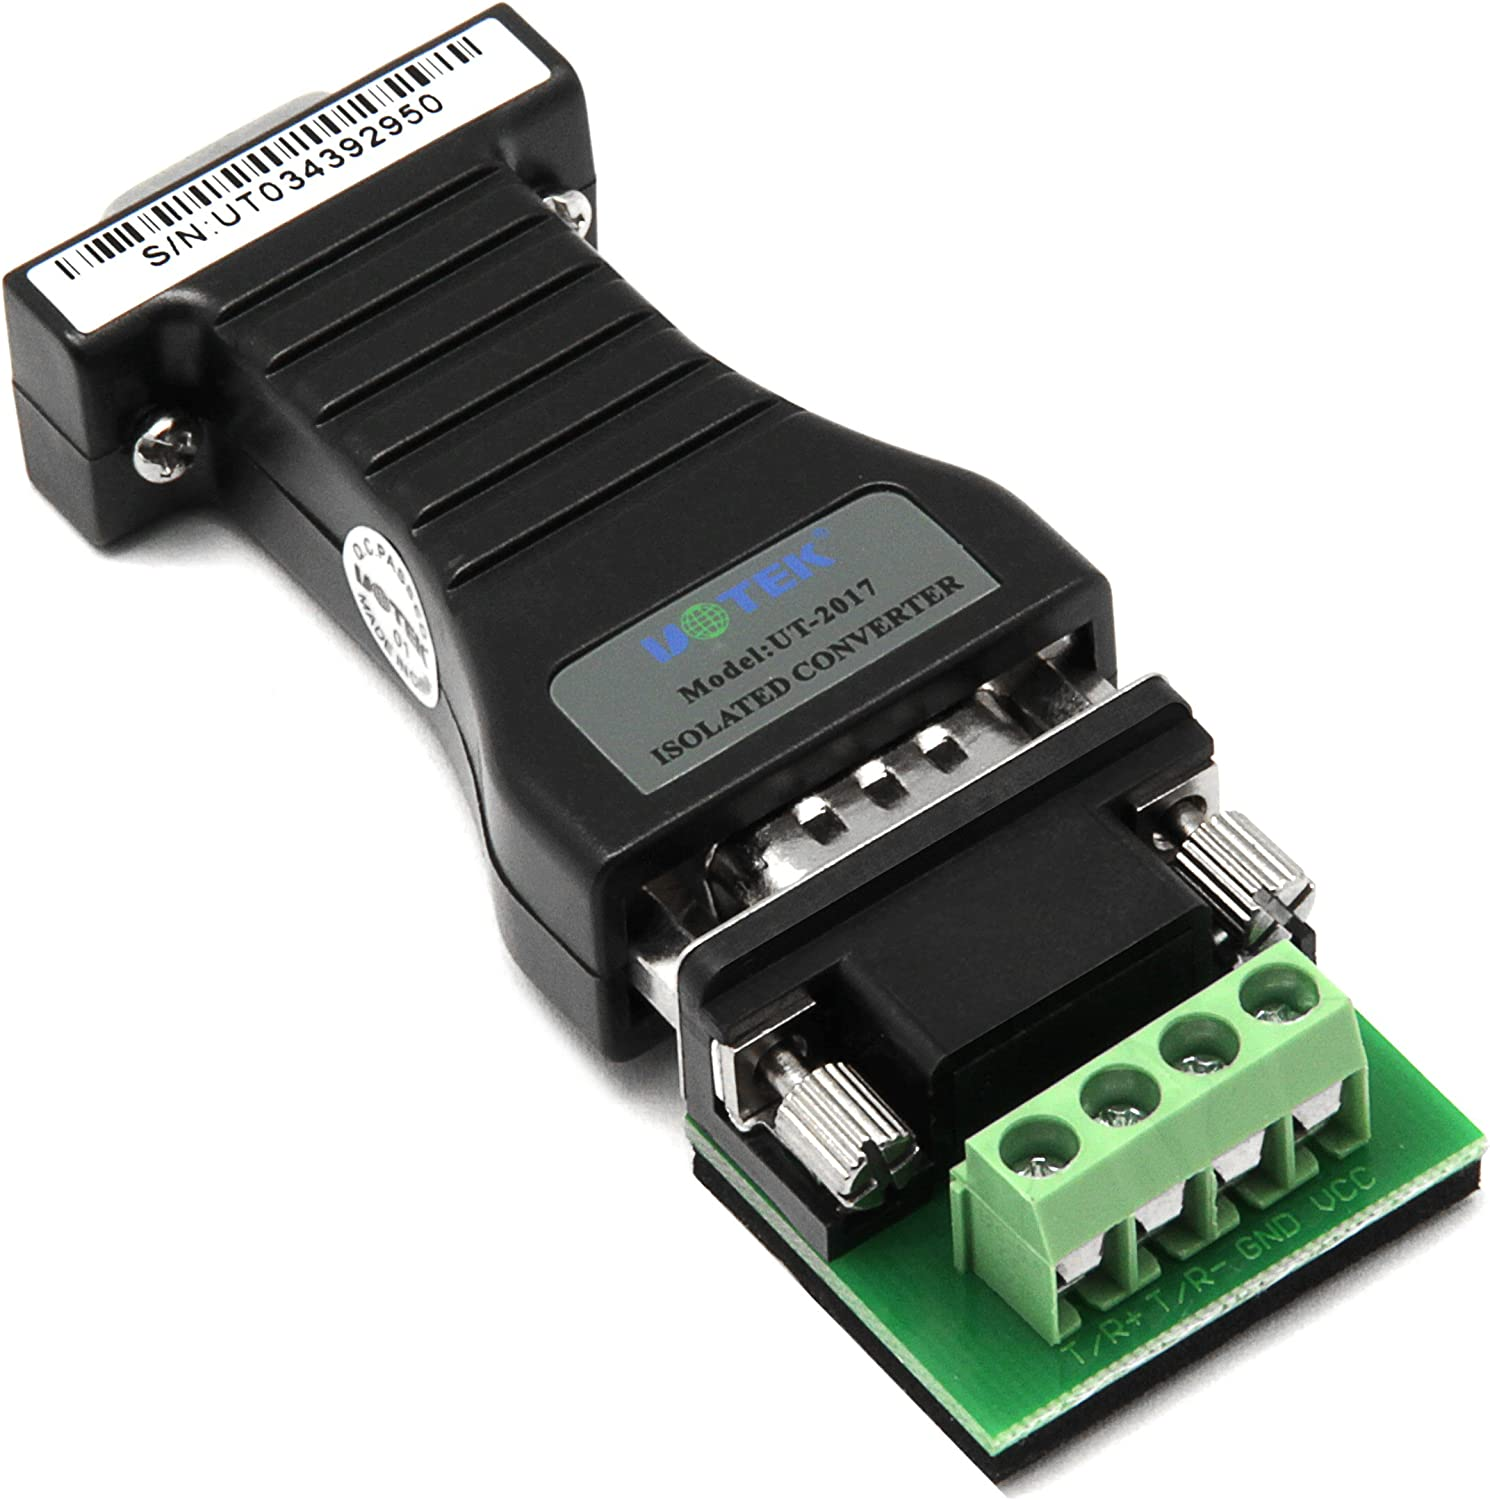 UTEK 232 to 485 RS232 to RS485 Port-Powered Serial Converter Adapter Opto-Isolated Photoelectric Isolation UT-2017